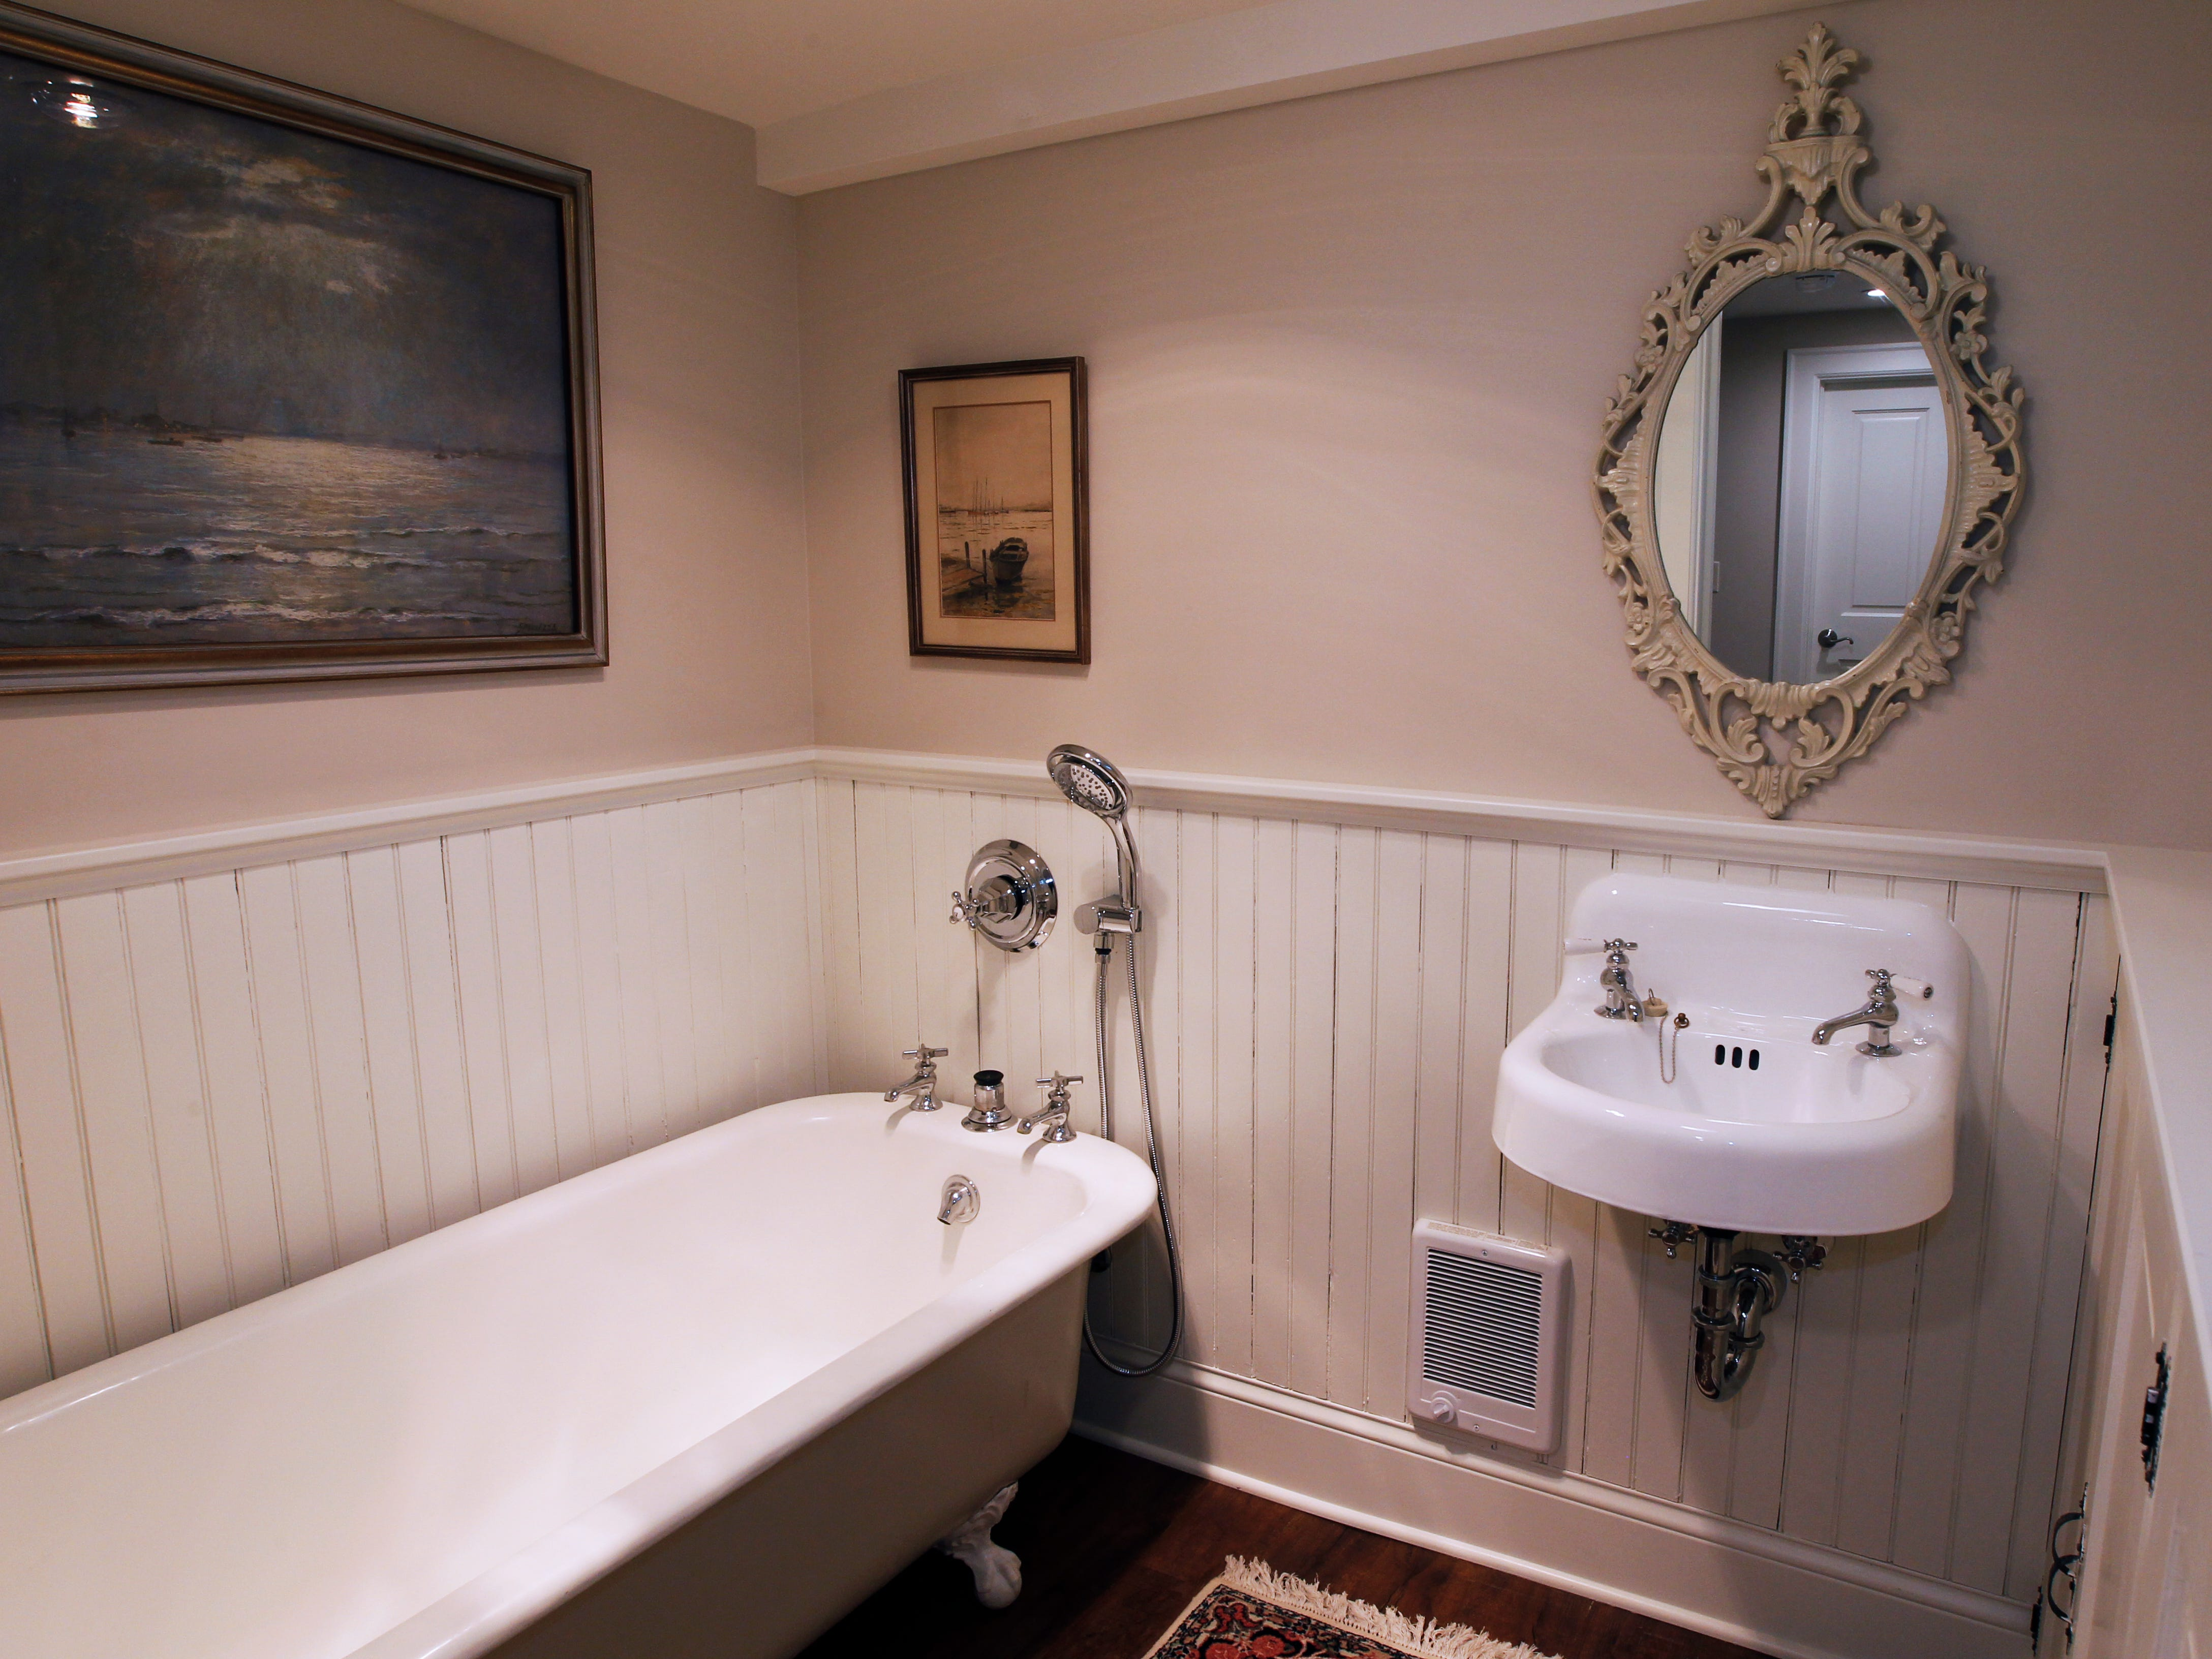 The downstairs bathroom features re-salvaged materials found throughout the house, including a clawfoot tub, sink and wainscoting.